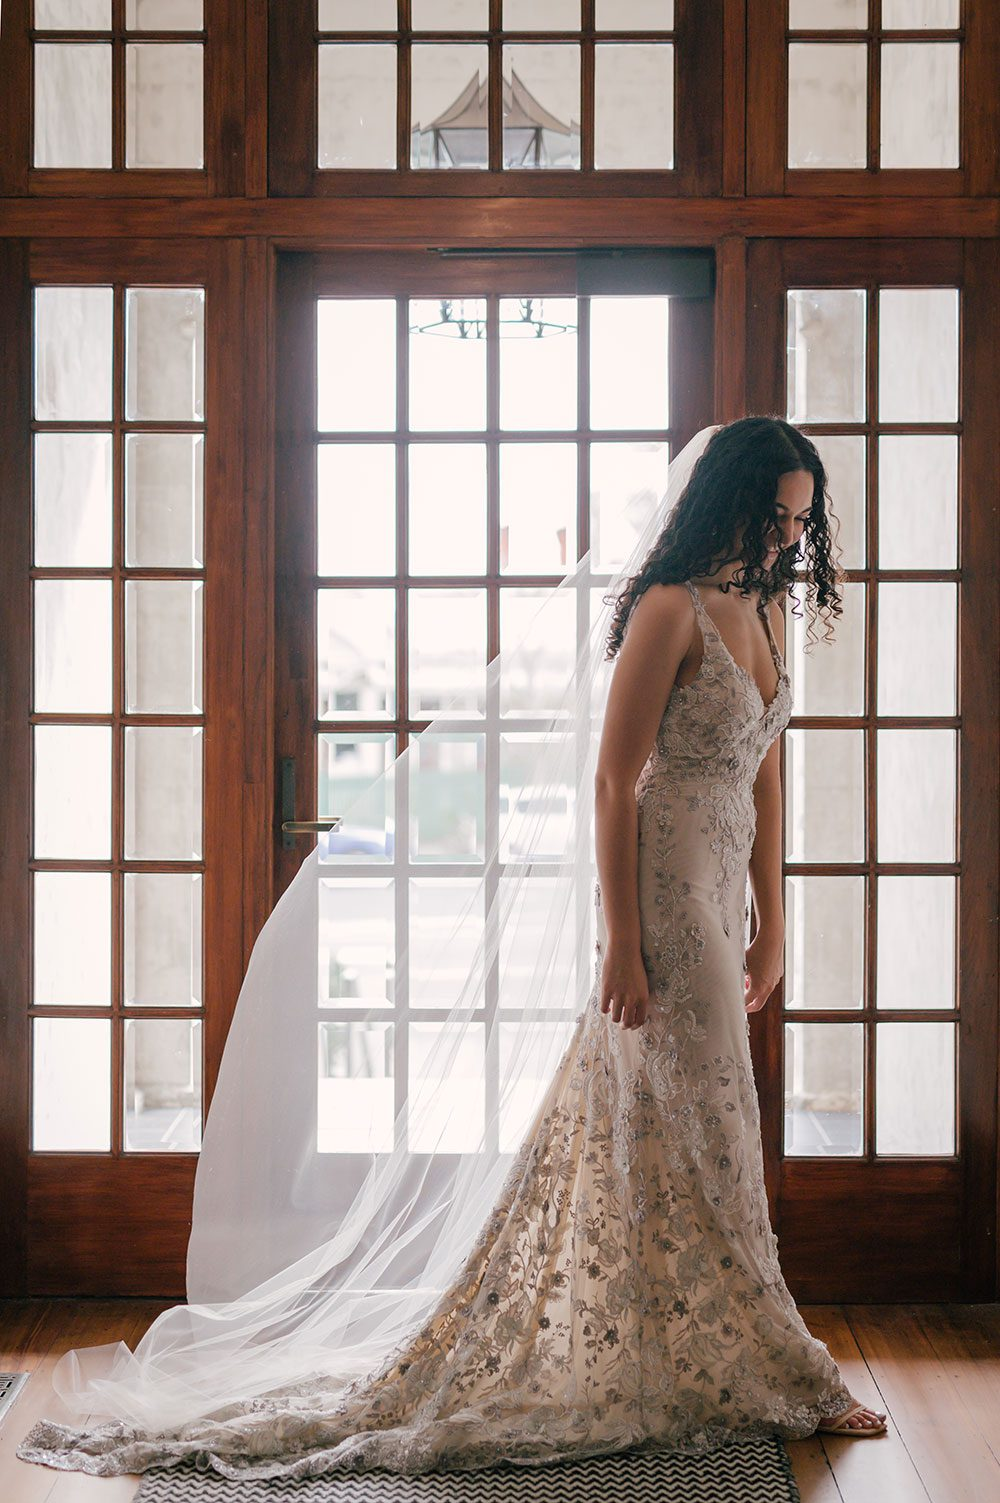 Bride wearing Kazumi Gown in soft grey with hand embellished lace and a low back - in front of window